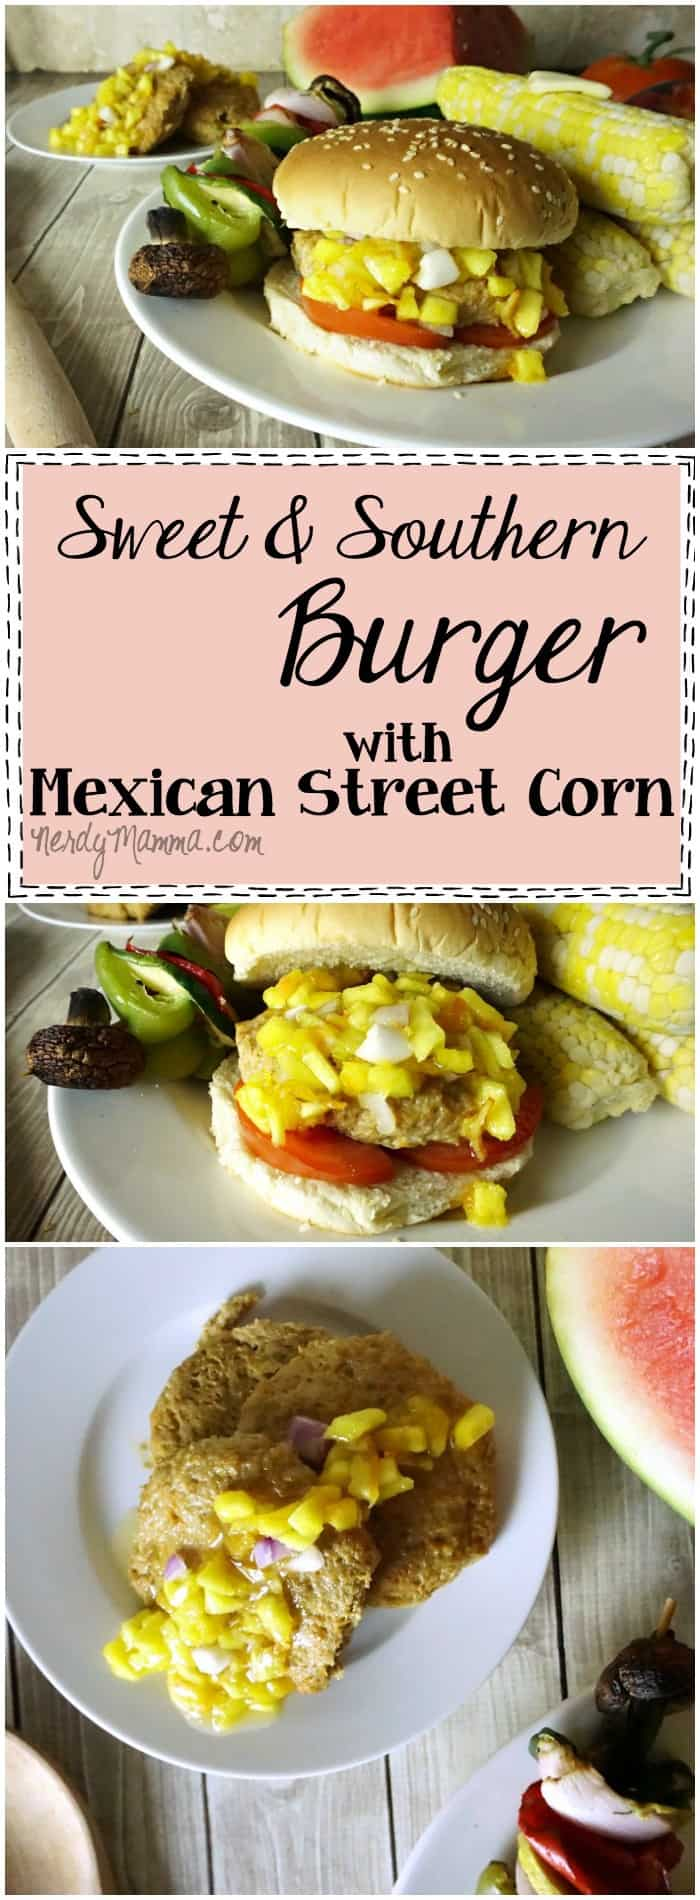 This is such an easy idea for a burger! I love it.